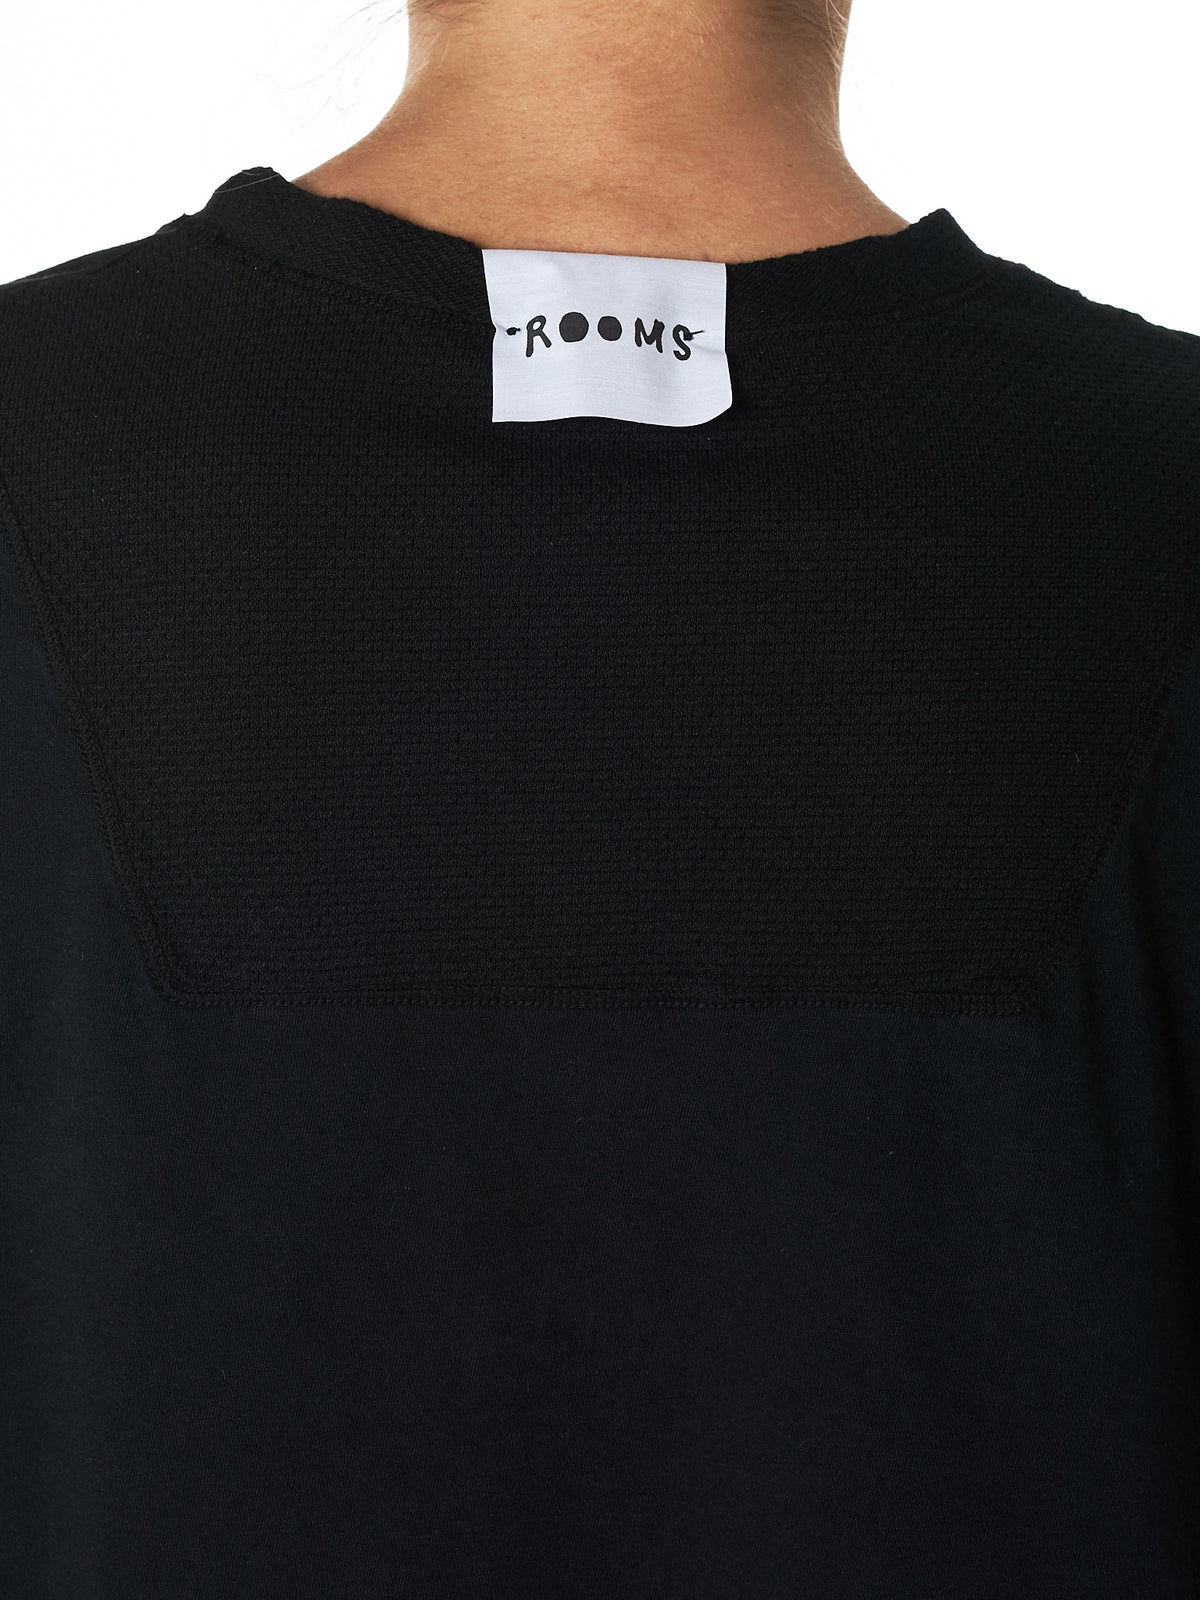 Lost & Found Rooms Tee-Shirt - Hlorenzo Detail 2